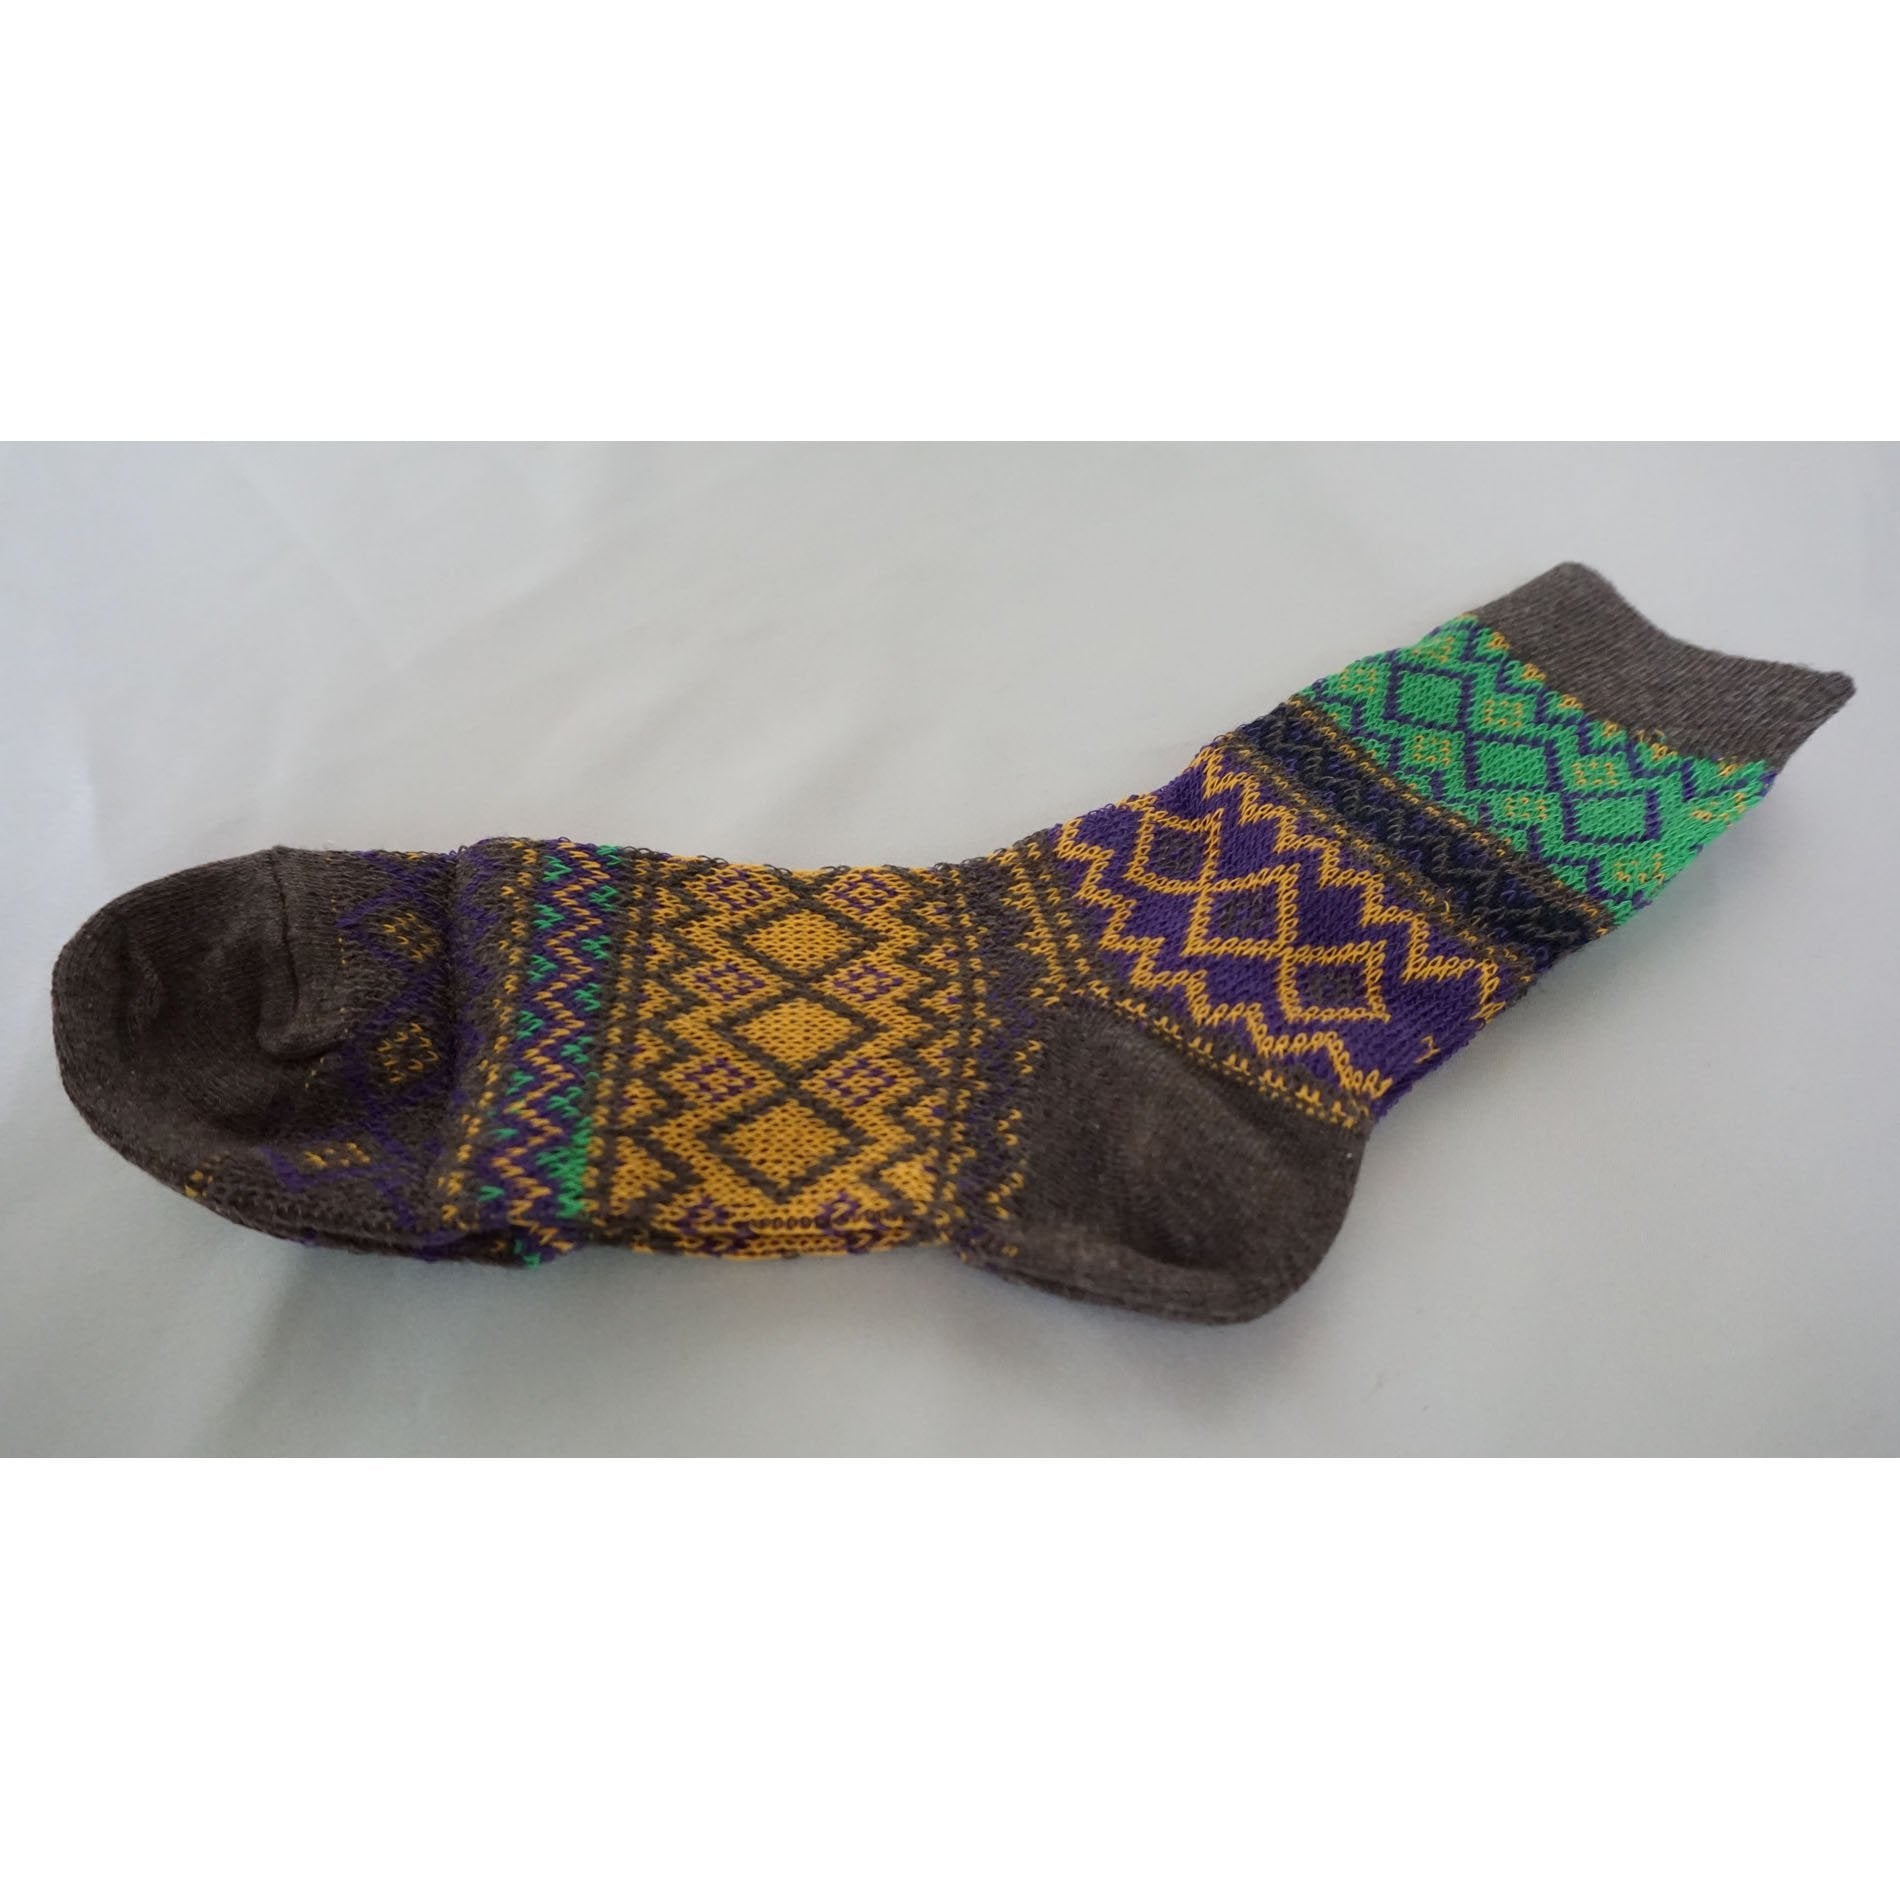 4Pack Women's Mismatched Casual Crew Jacquard Knit Socks